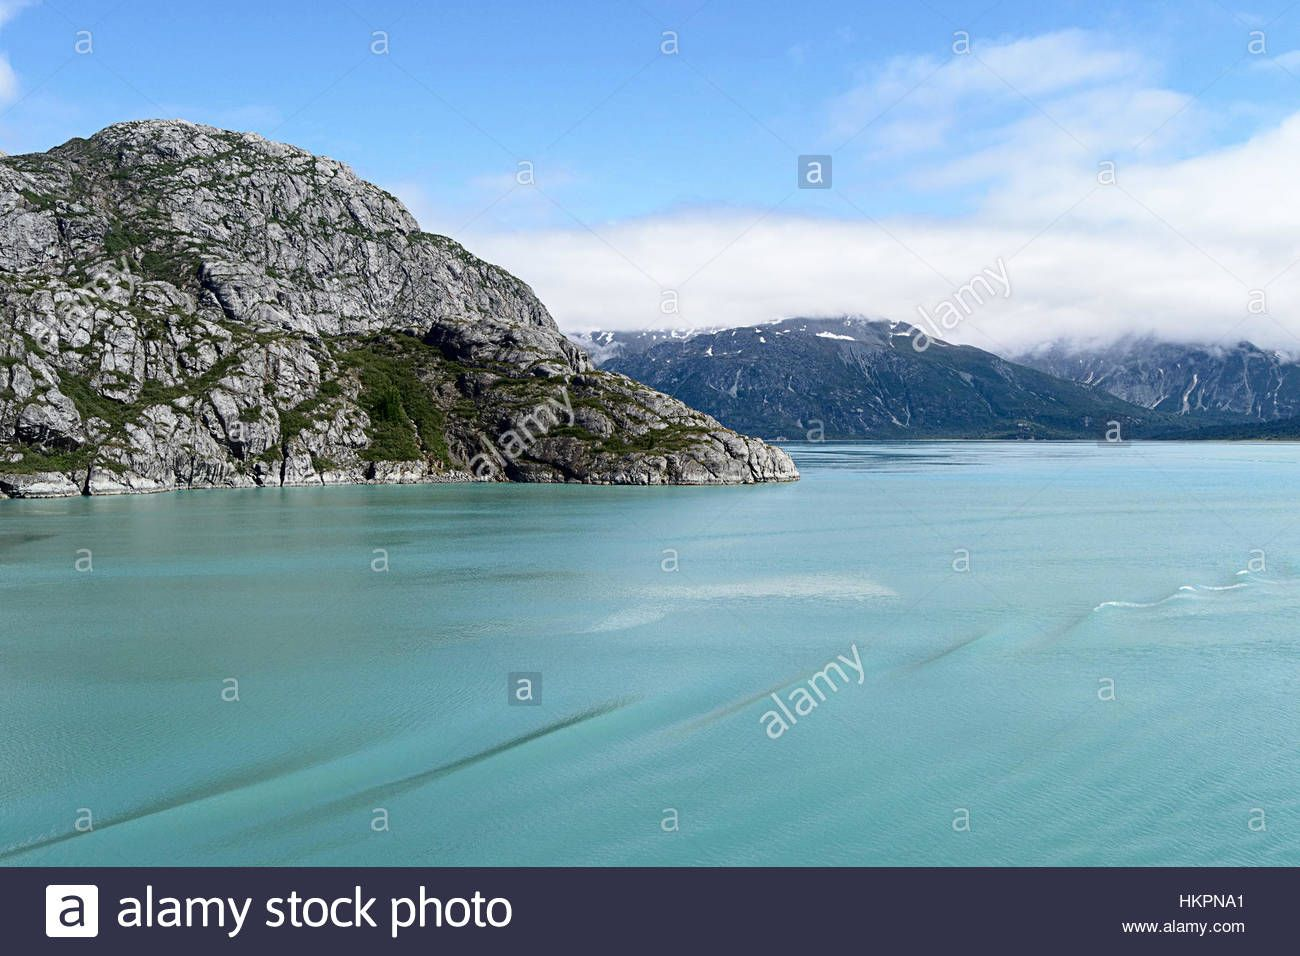 Download this stock image: Mountains and water of Glacier Bay National Park, Alaska - HKPNA1 from Alamy's library of millions of high resolution stock photos, illustrations and vectors.